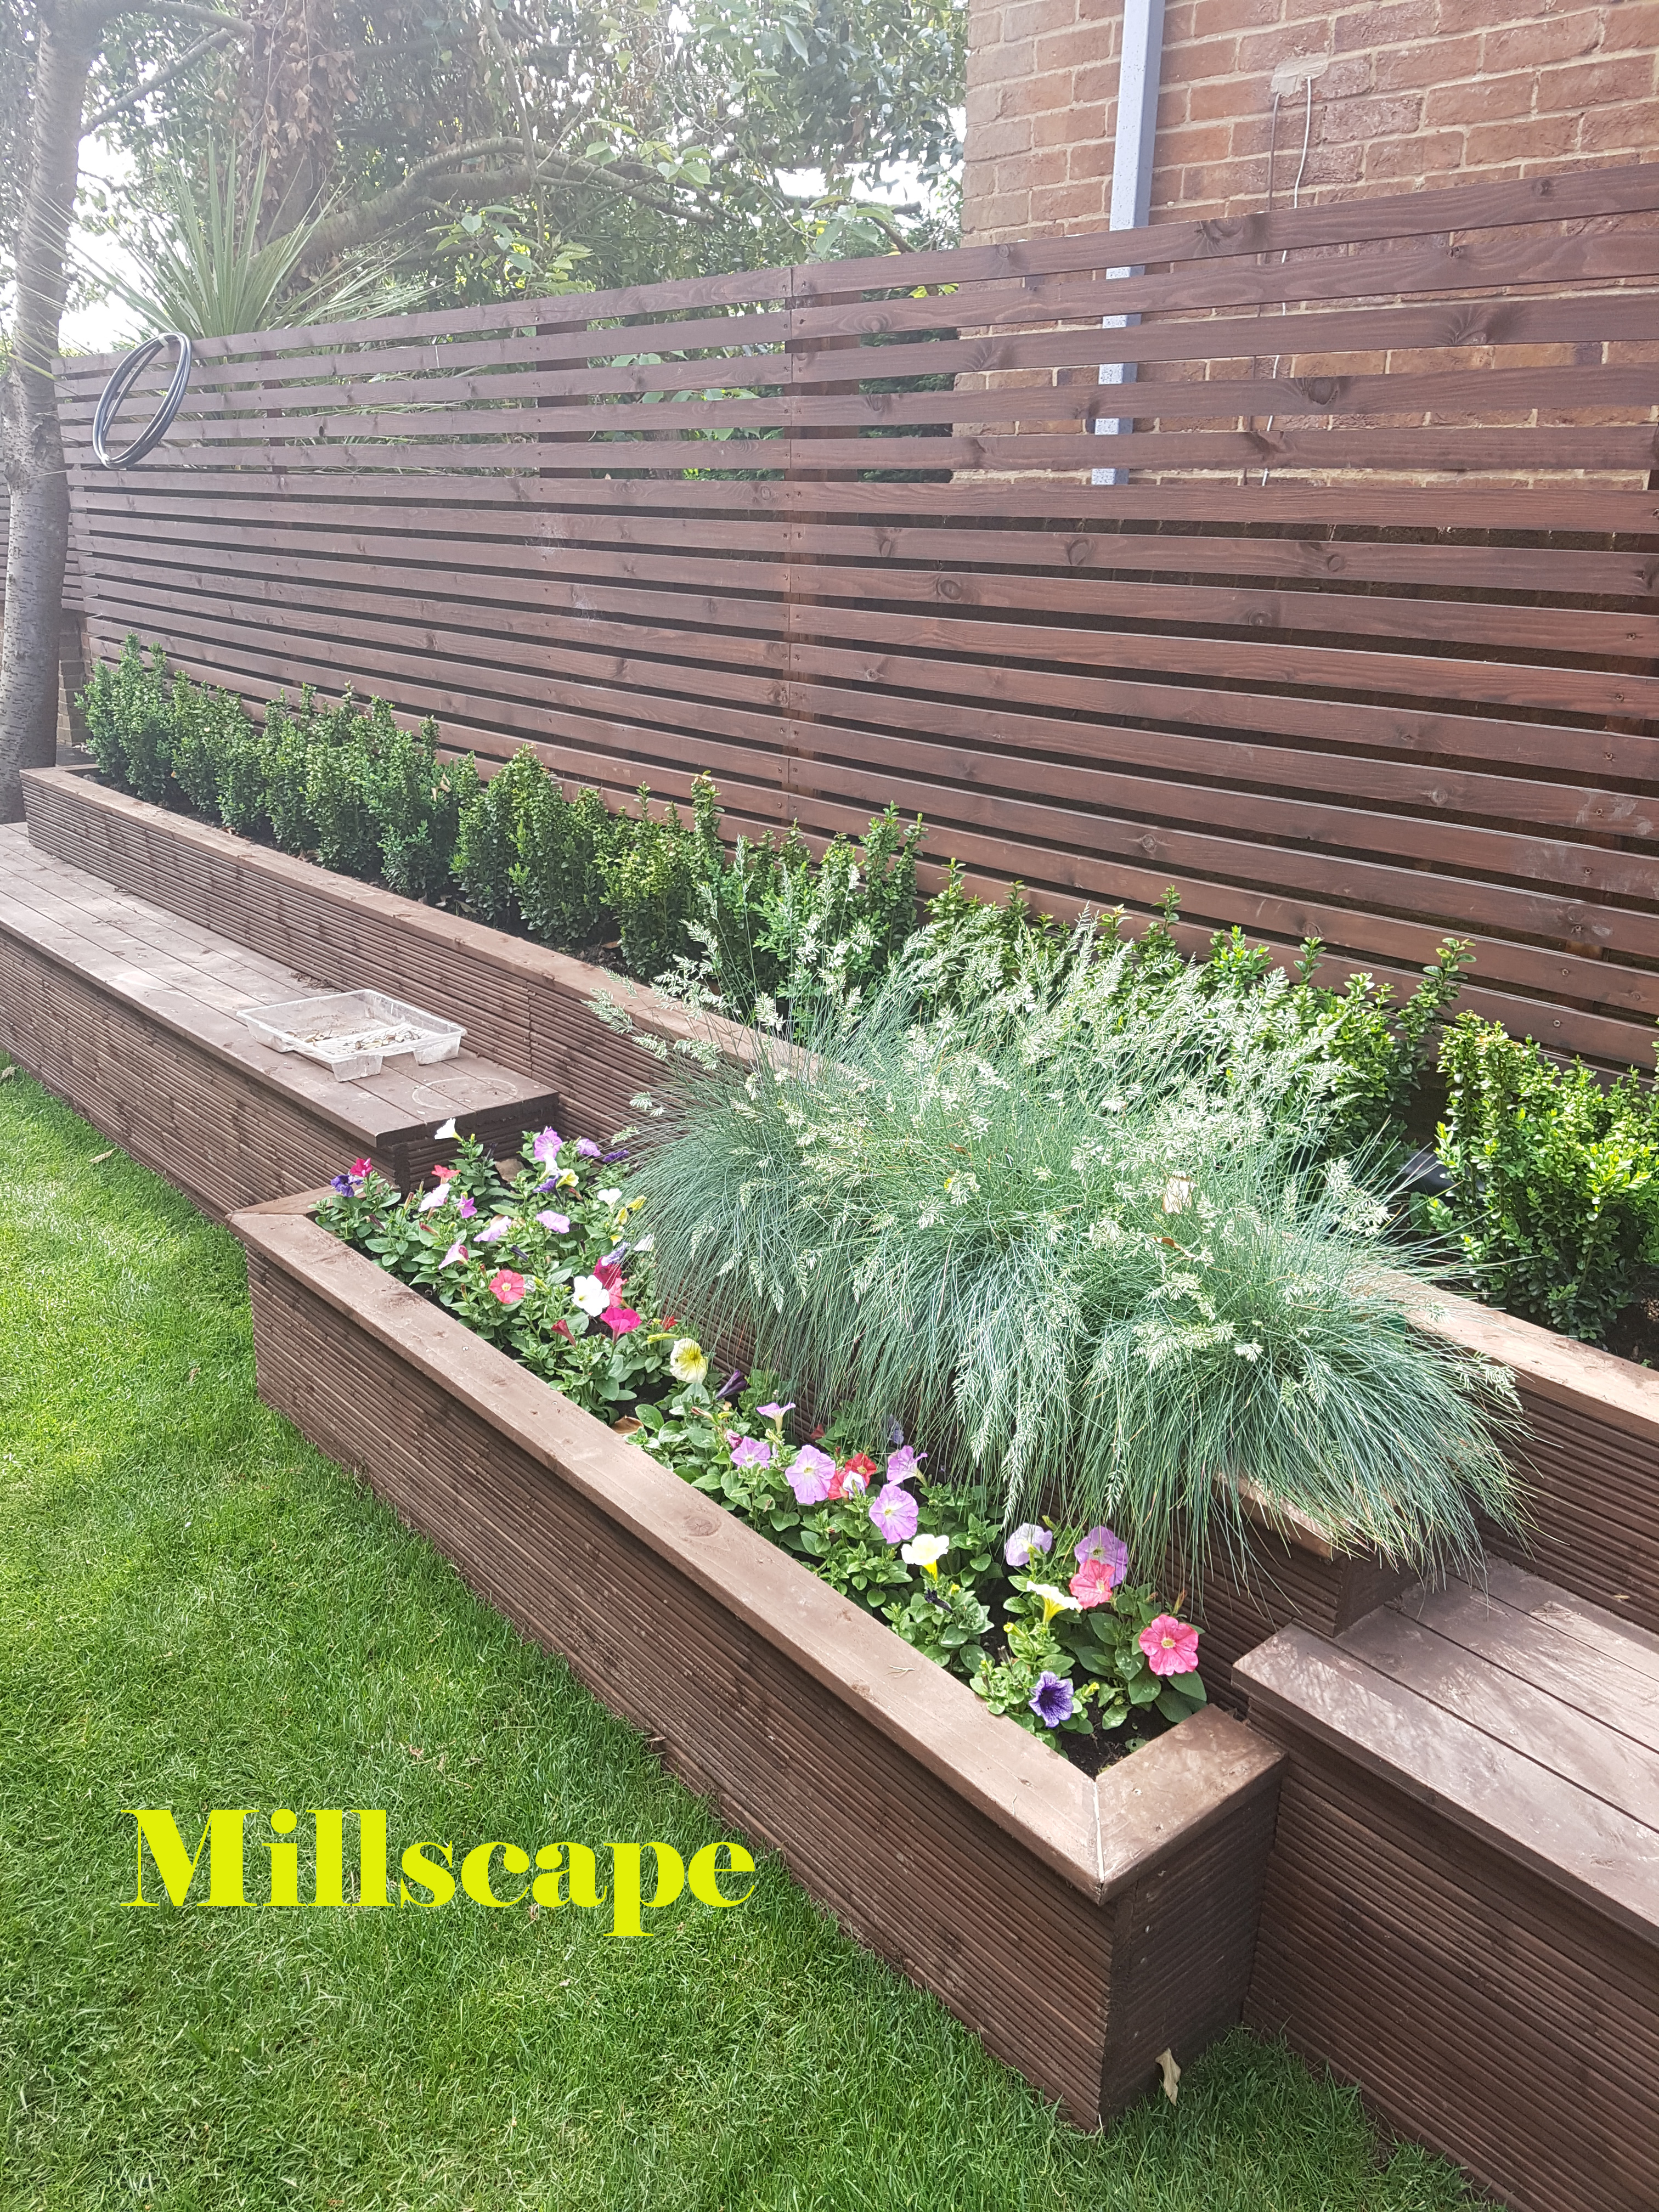 Landscaping Mill hill Design Paving